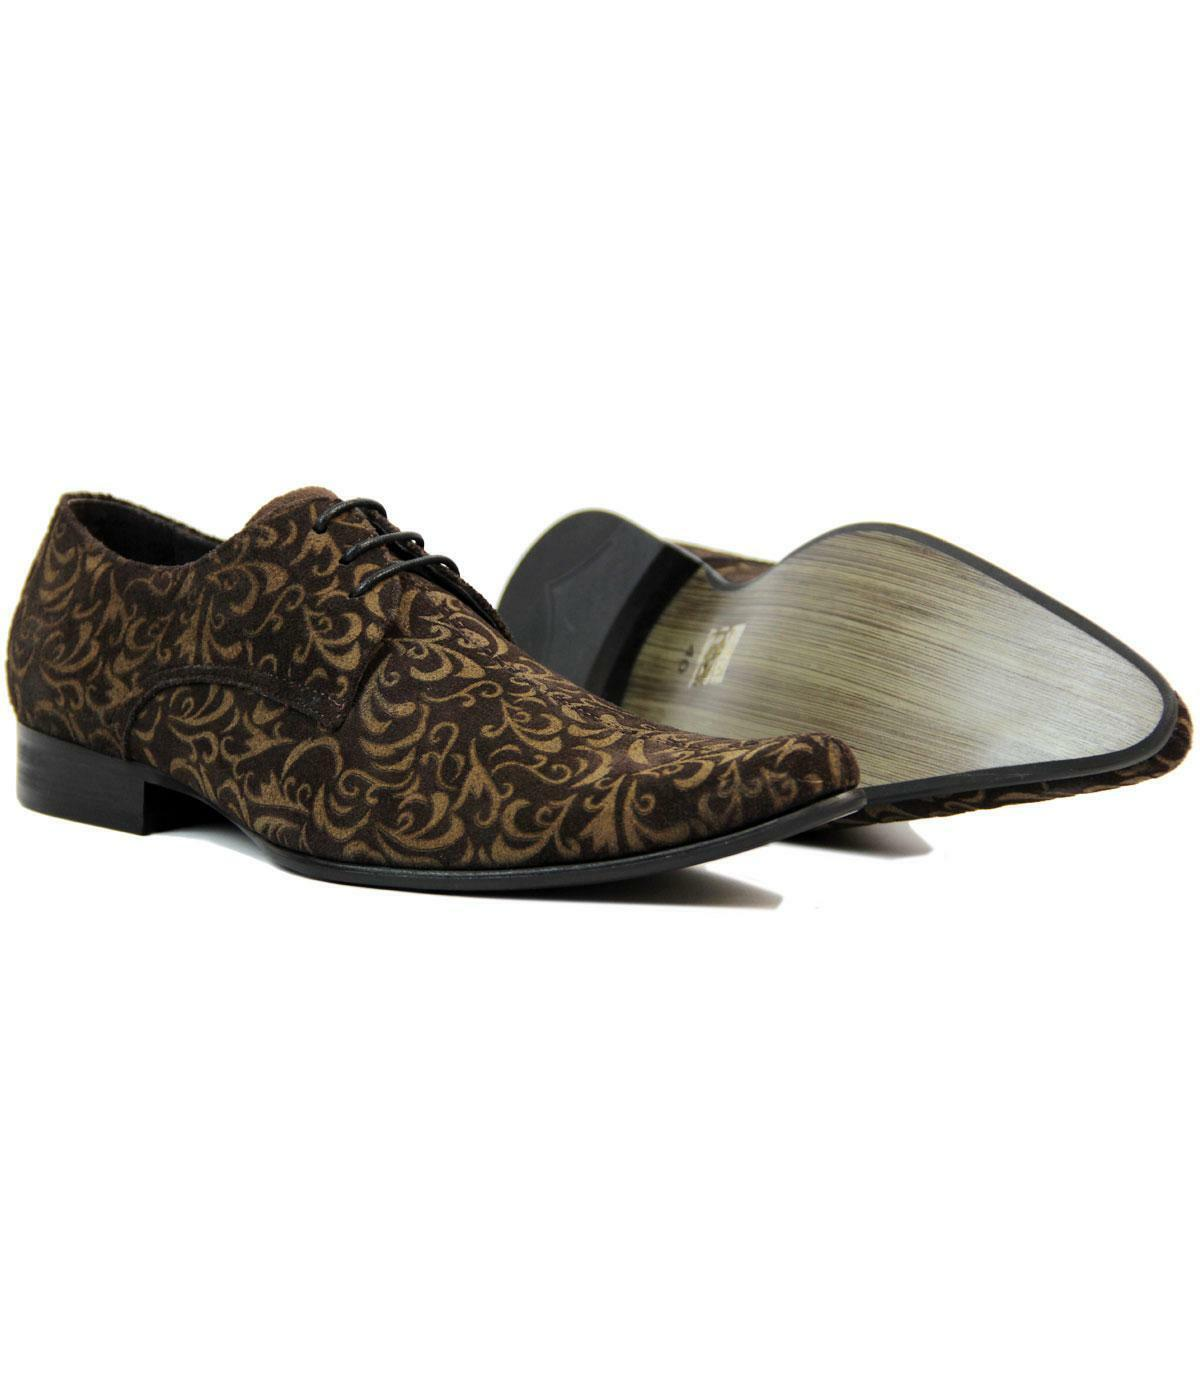 NEW MADCAP MOD RETRO MOD SIXTIES PAISLEY SUEDE SHOES Winklepickers 60s JAG Brown